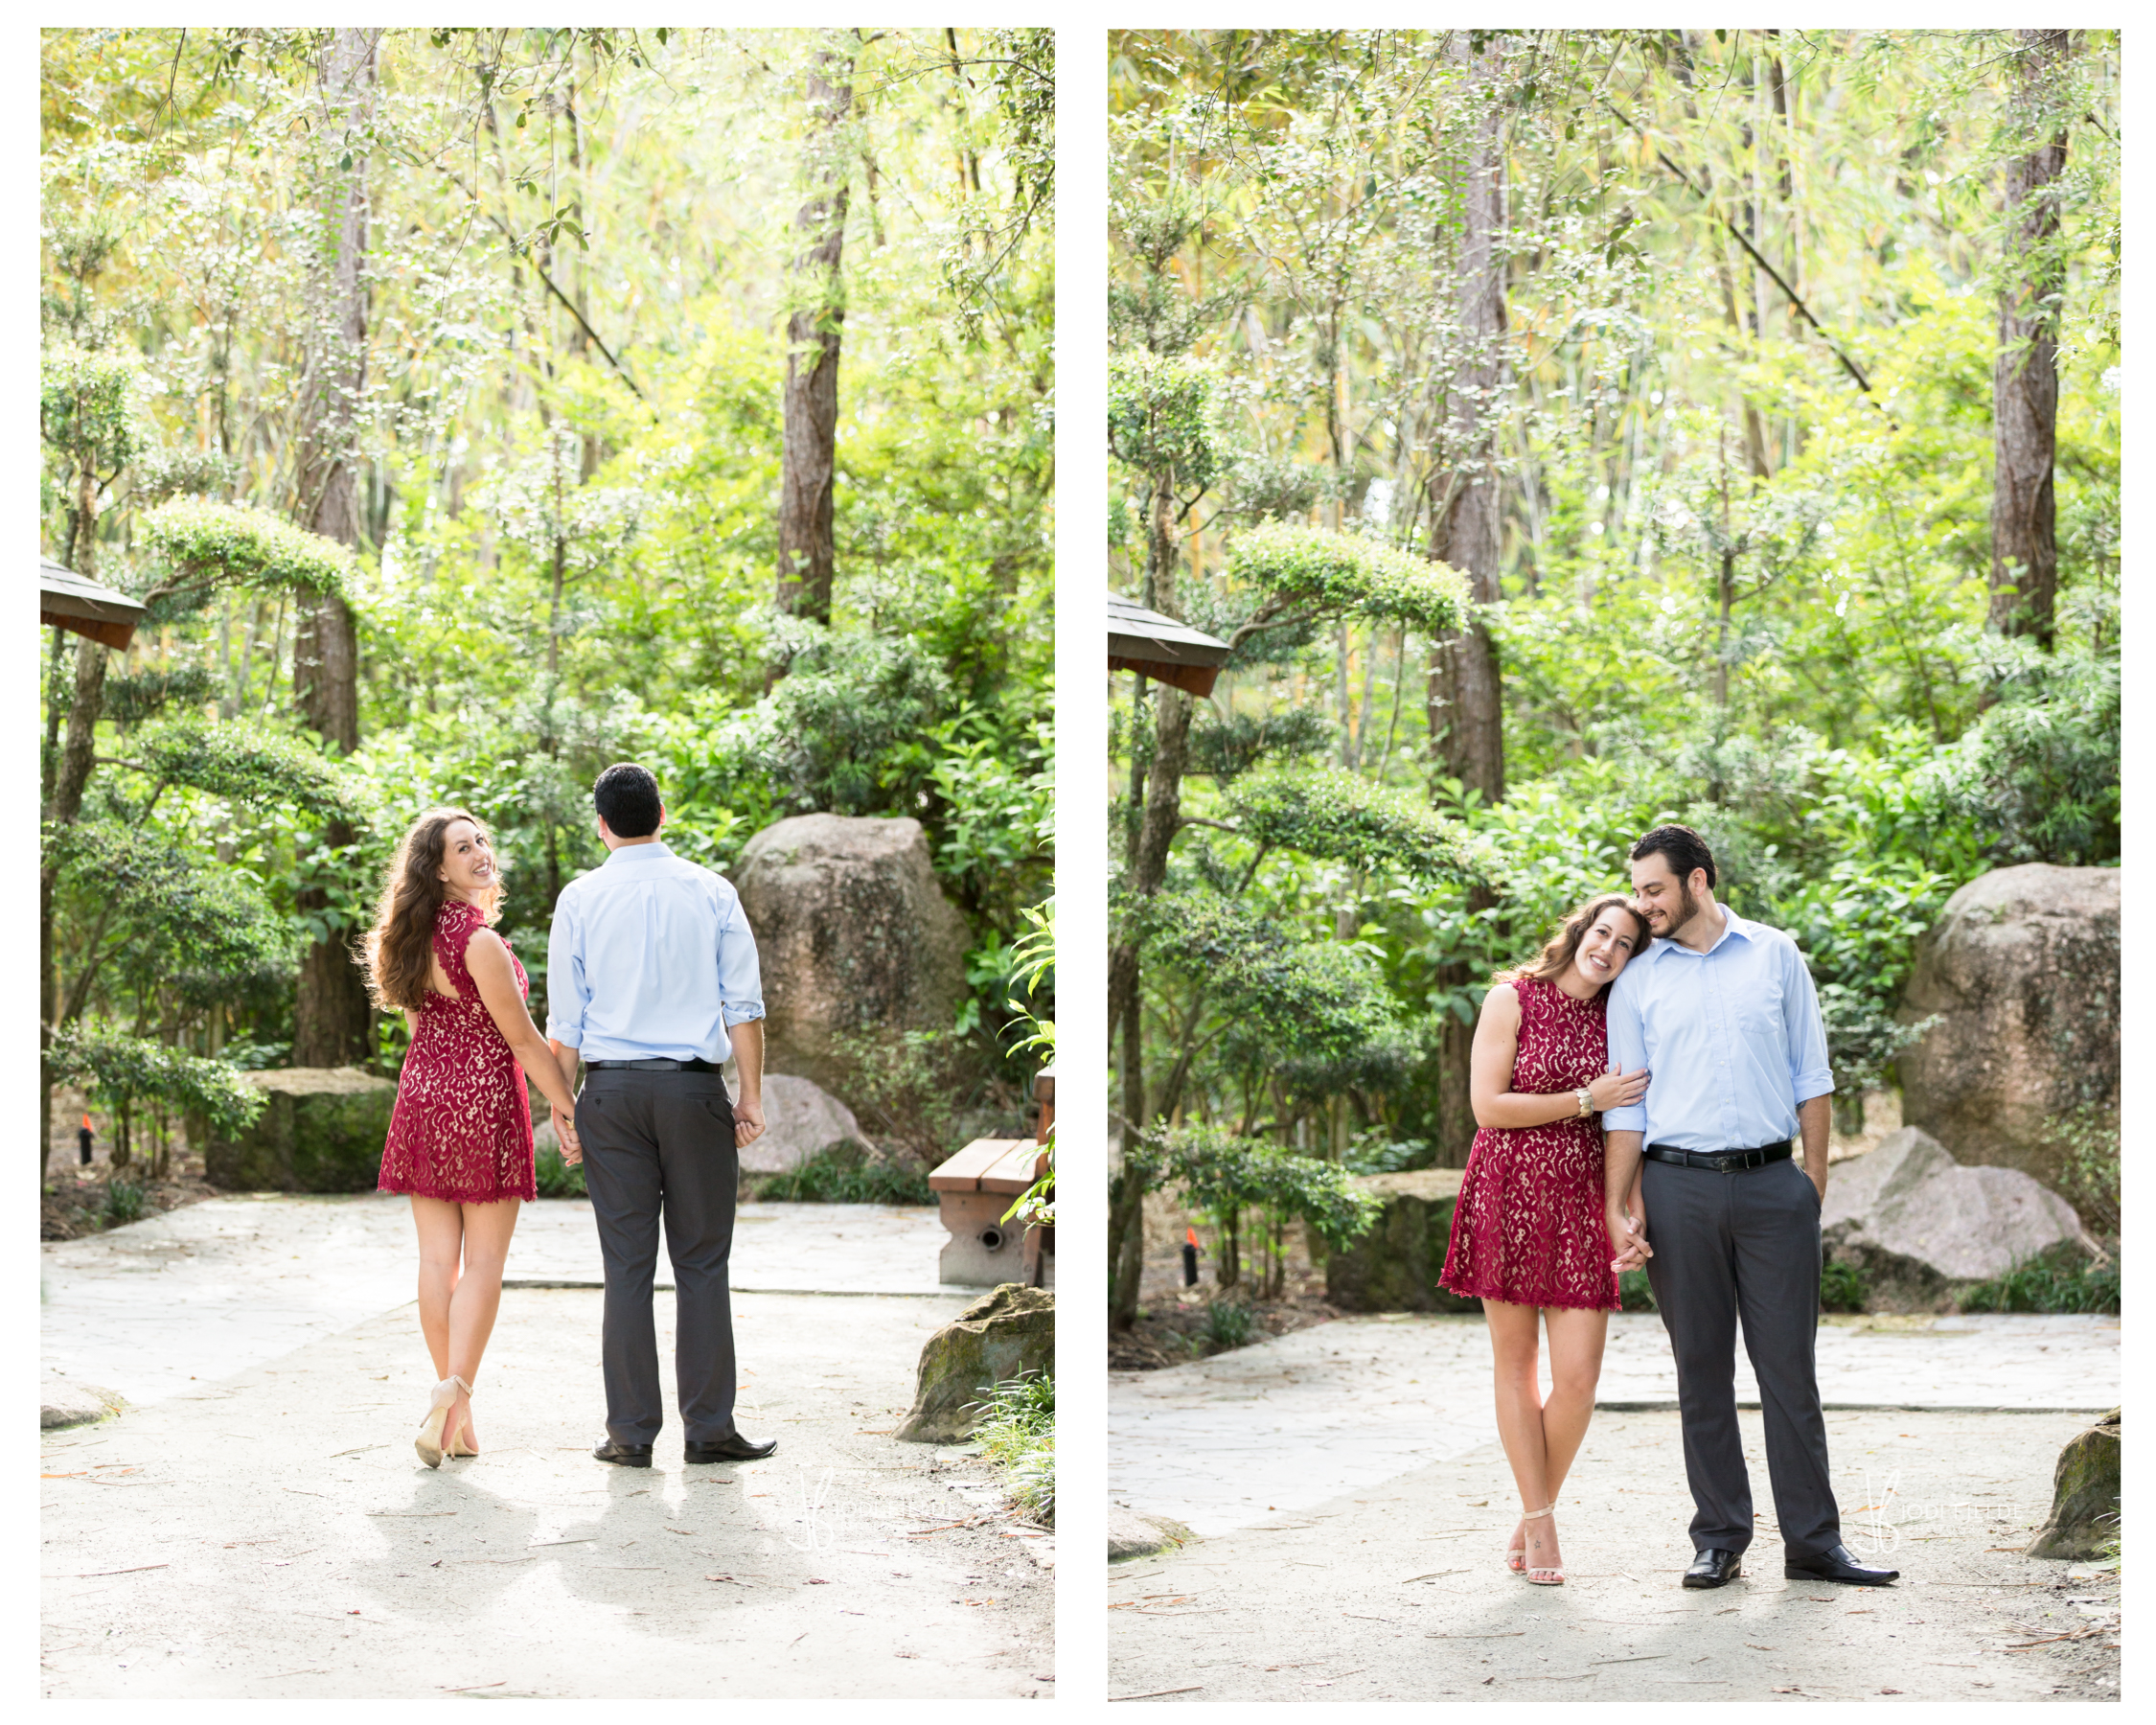 Morikami_Museum_Gardens_Delray_Beach_Engagement_Heather_and Doug_7.jpg